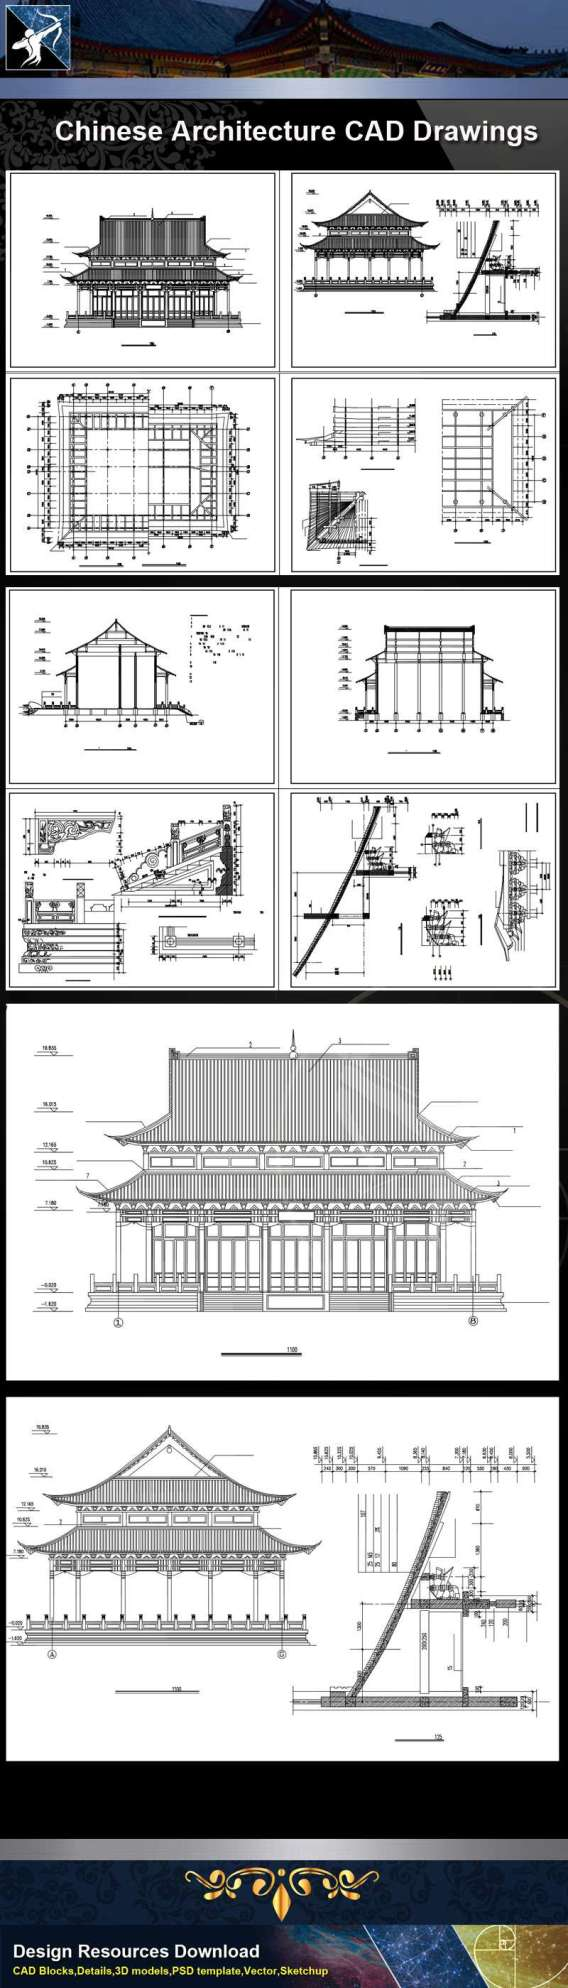 ★【Chinese Architecture CAD Drawings】@Grand Hall -Chinese Temple Drawings,CAD Details,Elevation